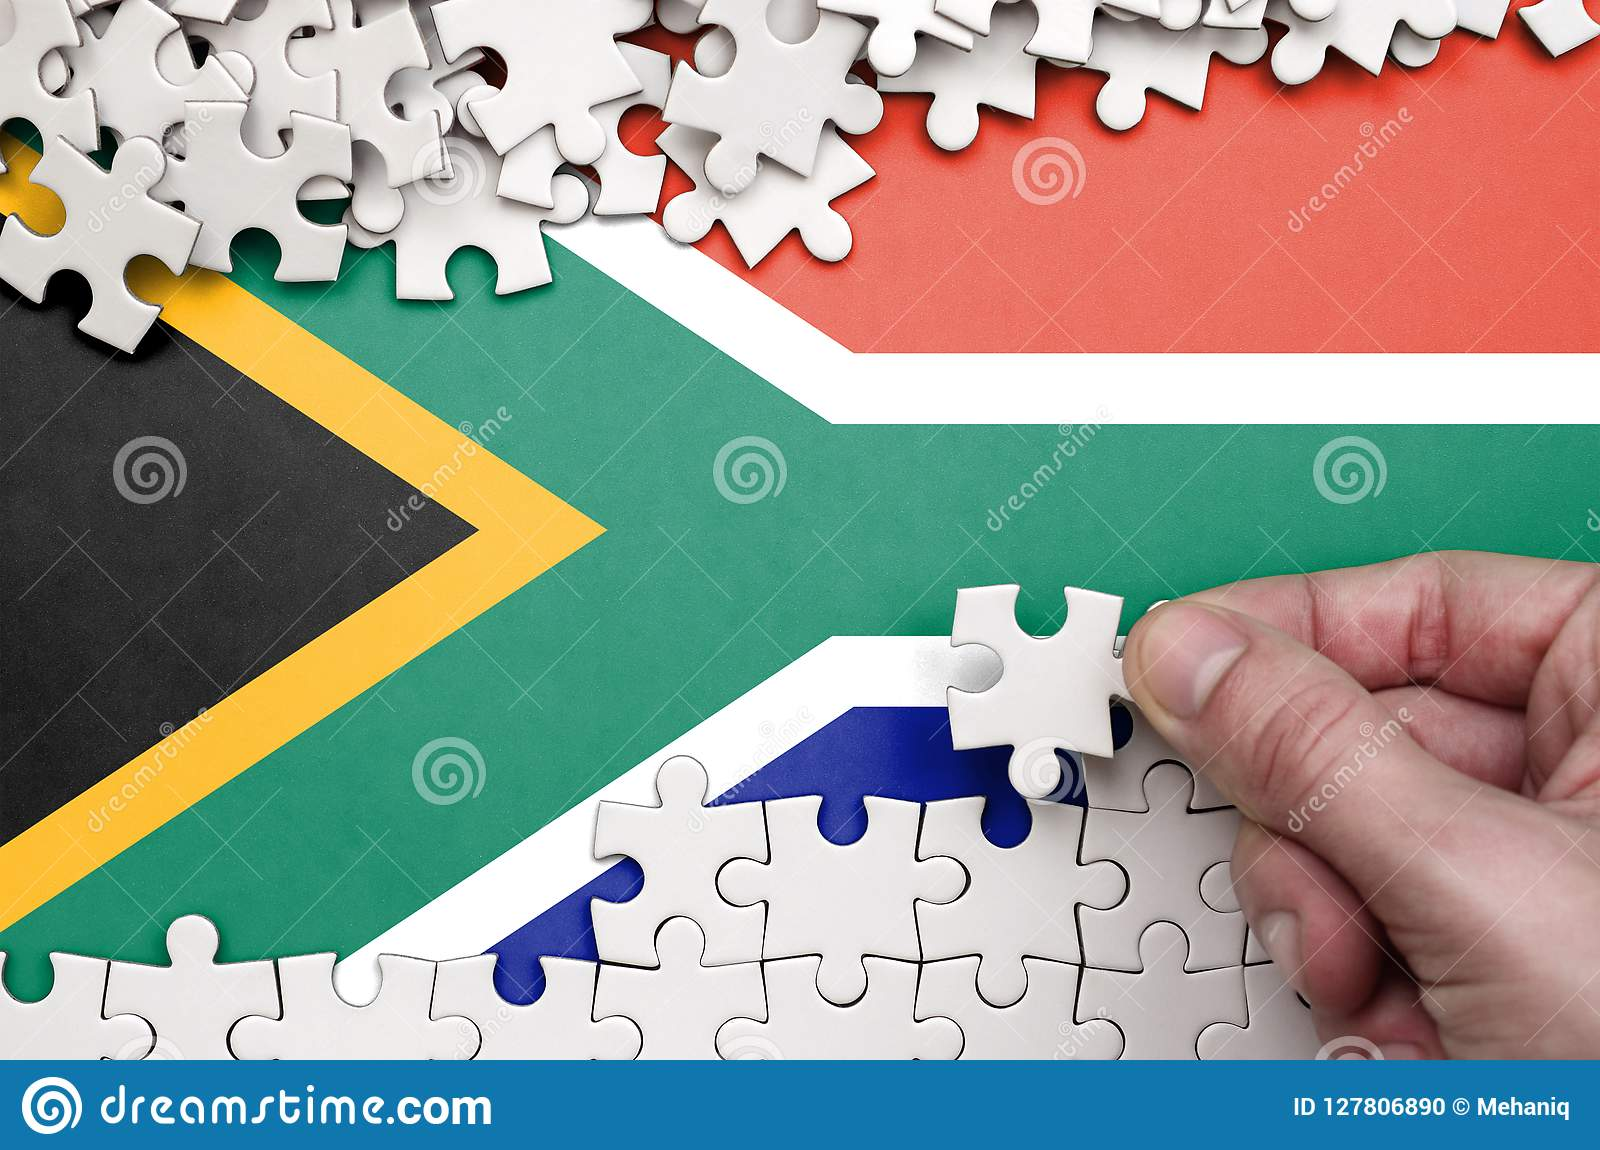 South Africa flag is depicted on a table on which the human hand folds a puzzle of white color